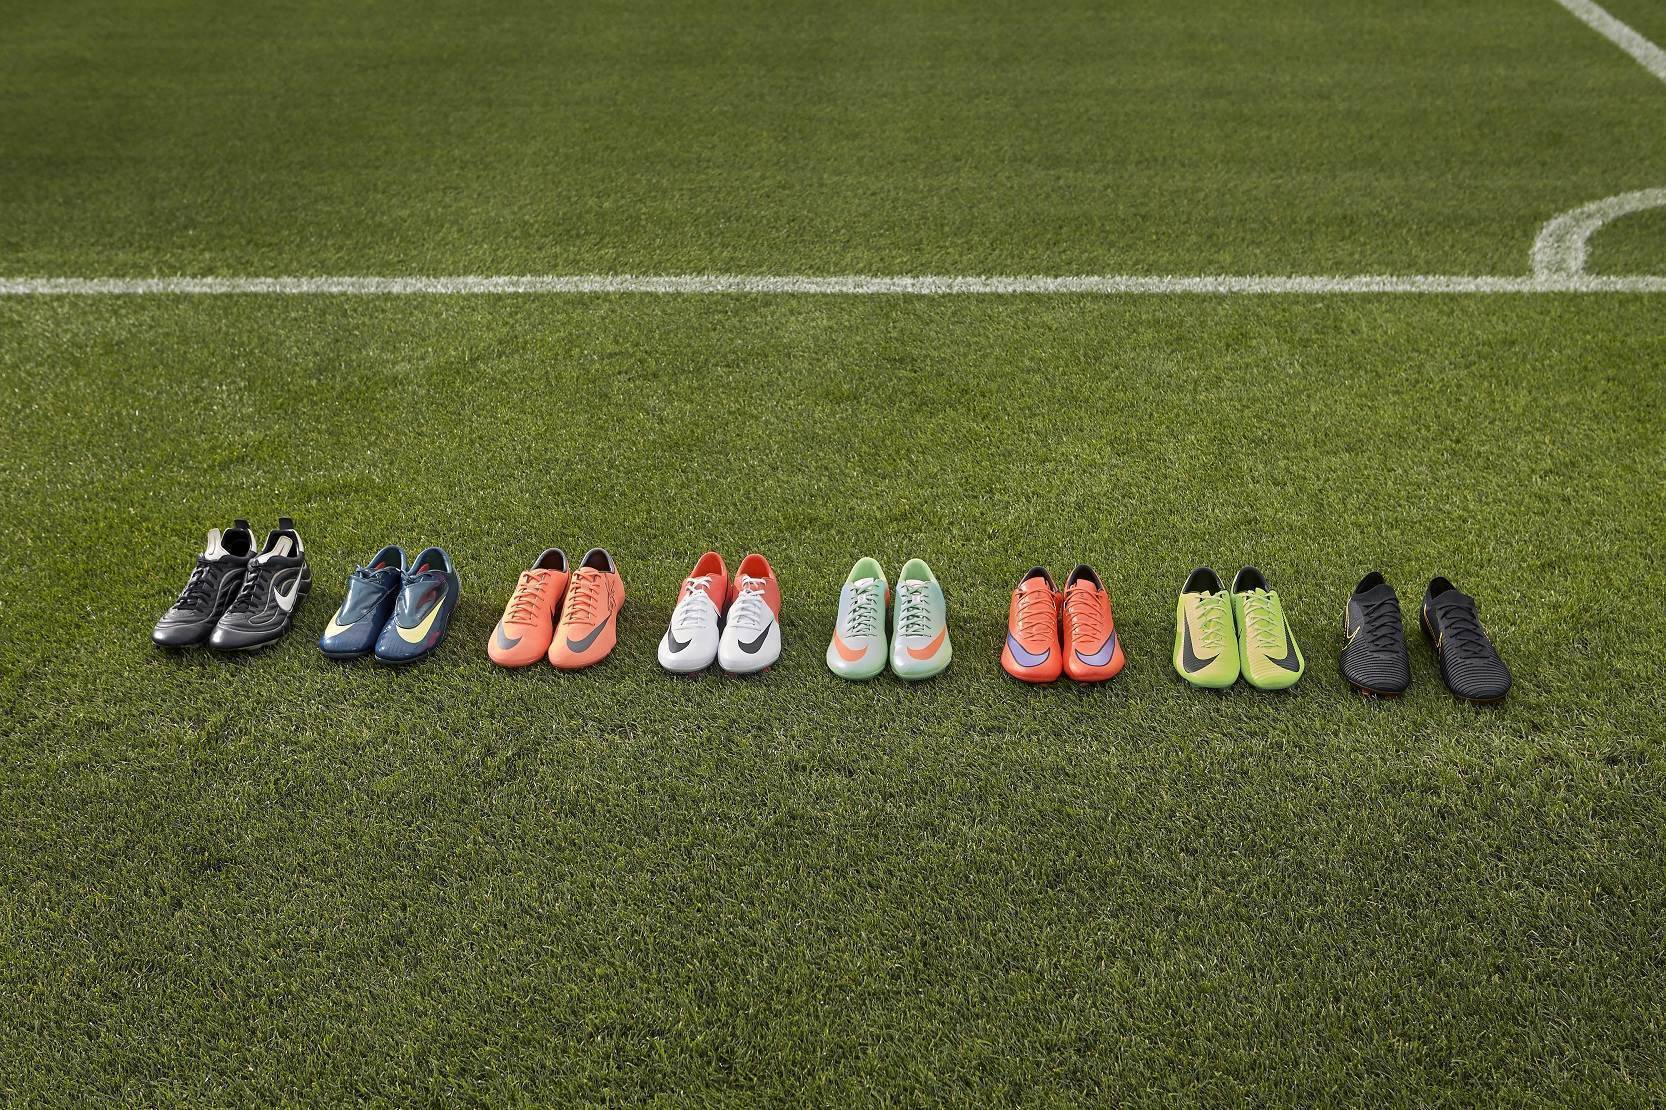 df727d76f04 Gallery  Nike   Hazard unveil all new Nike boots - Boots - FTBL Life